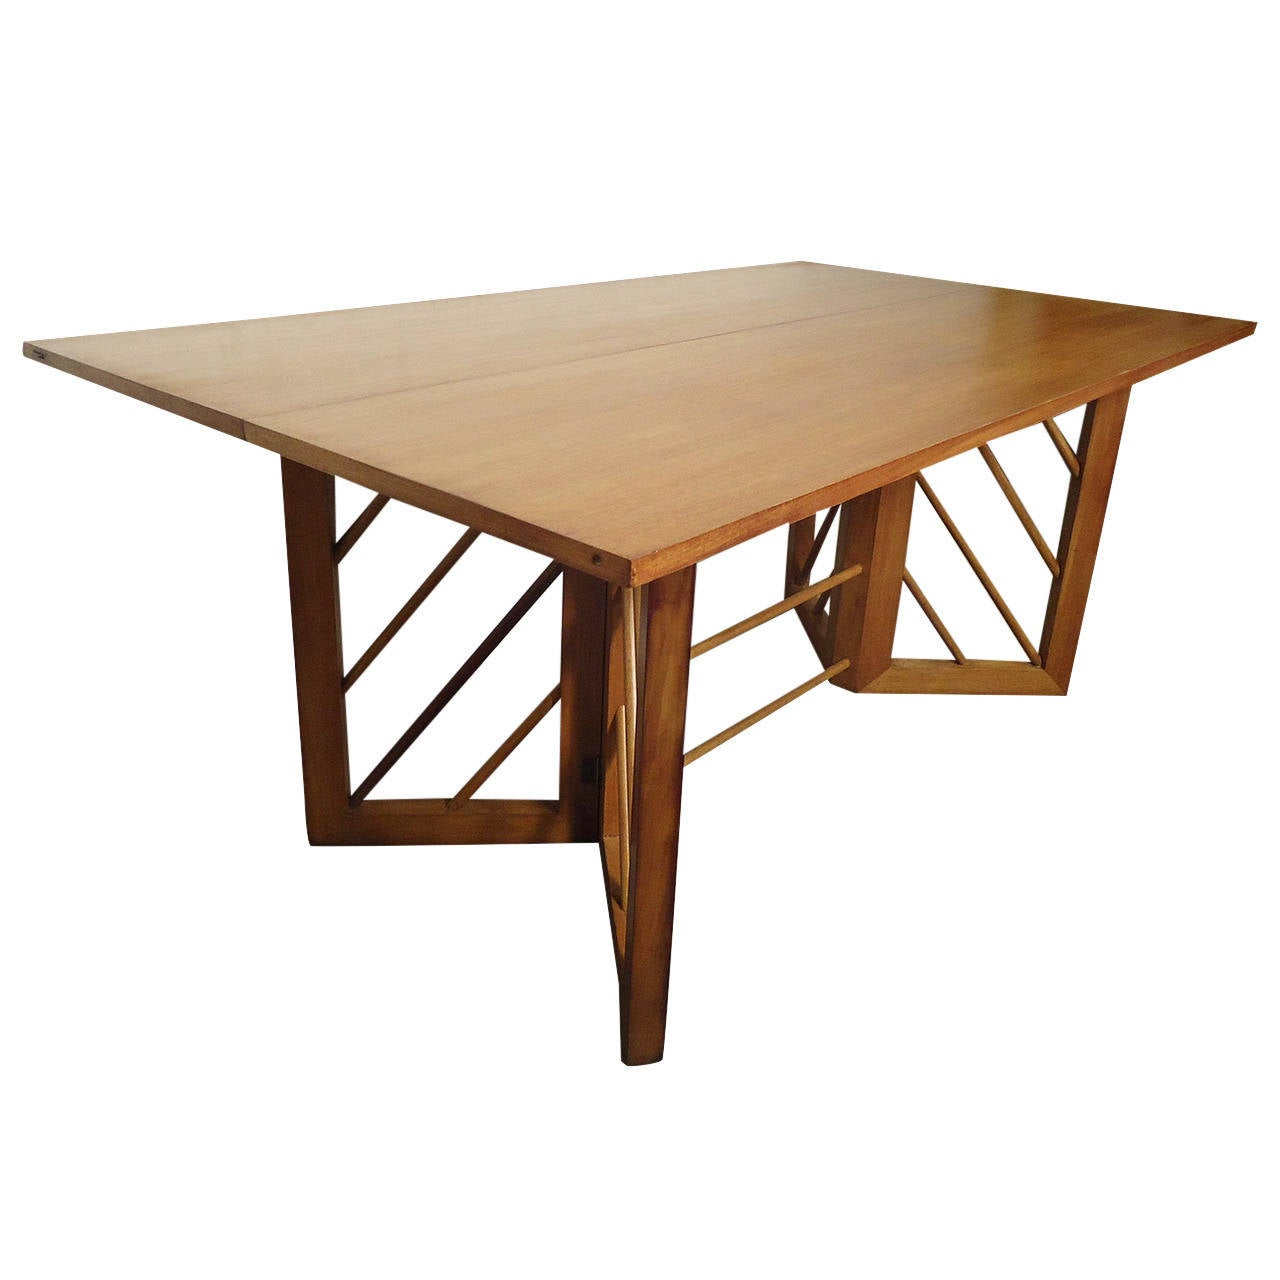 Mid century modern folding console or dining table at 1stdibs for Folding dining table